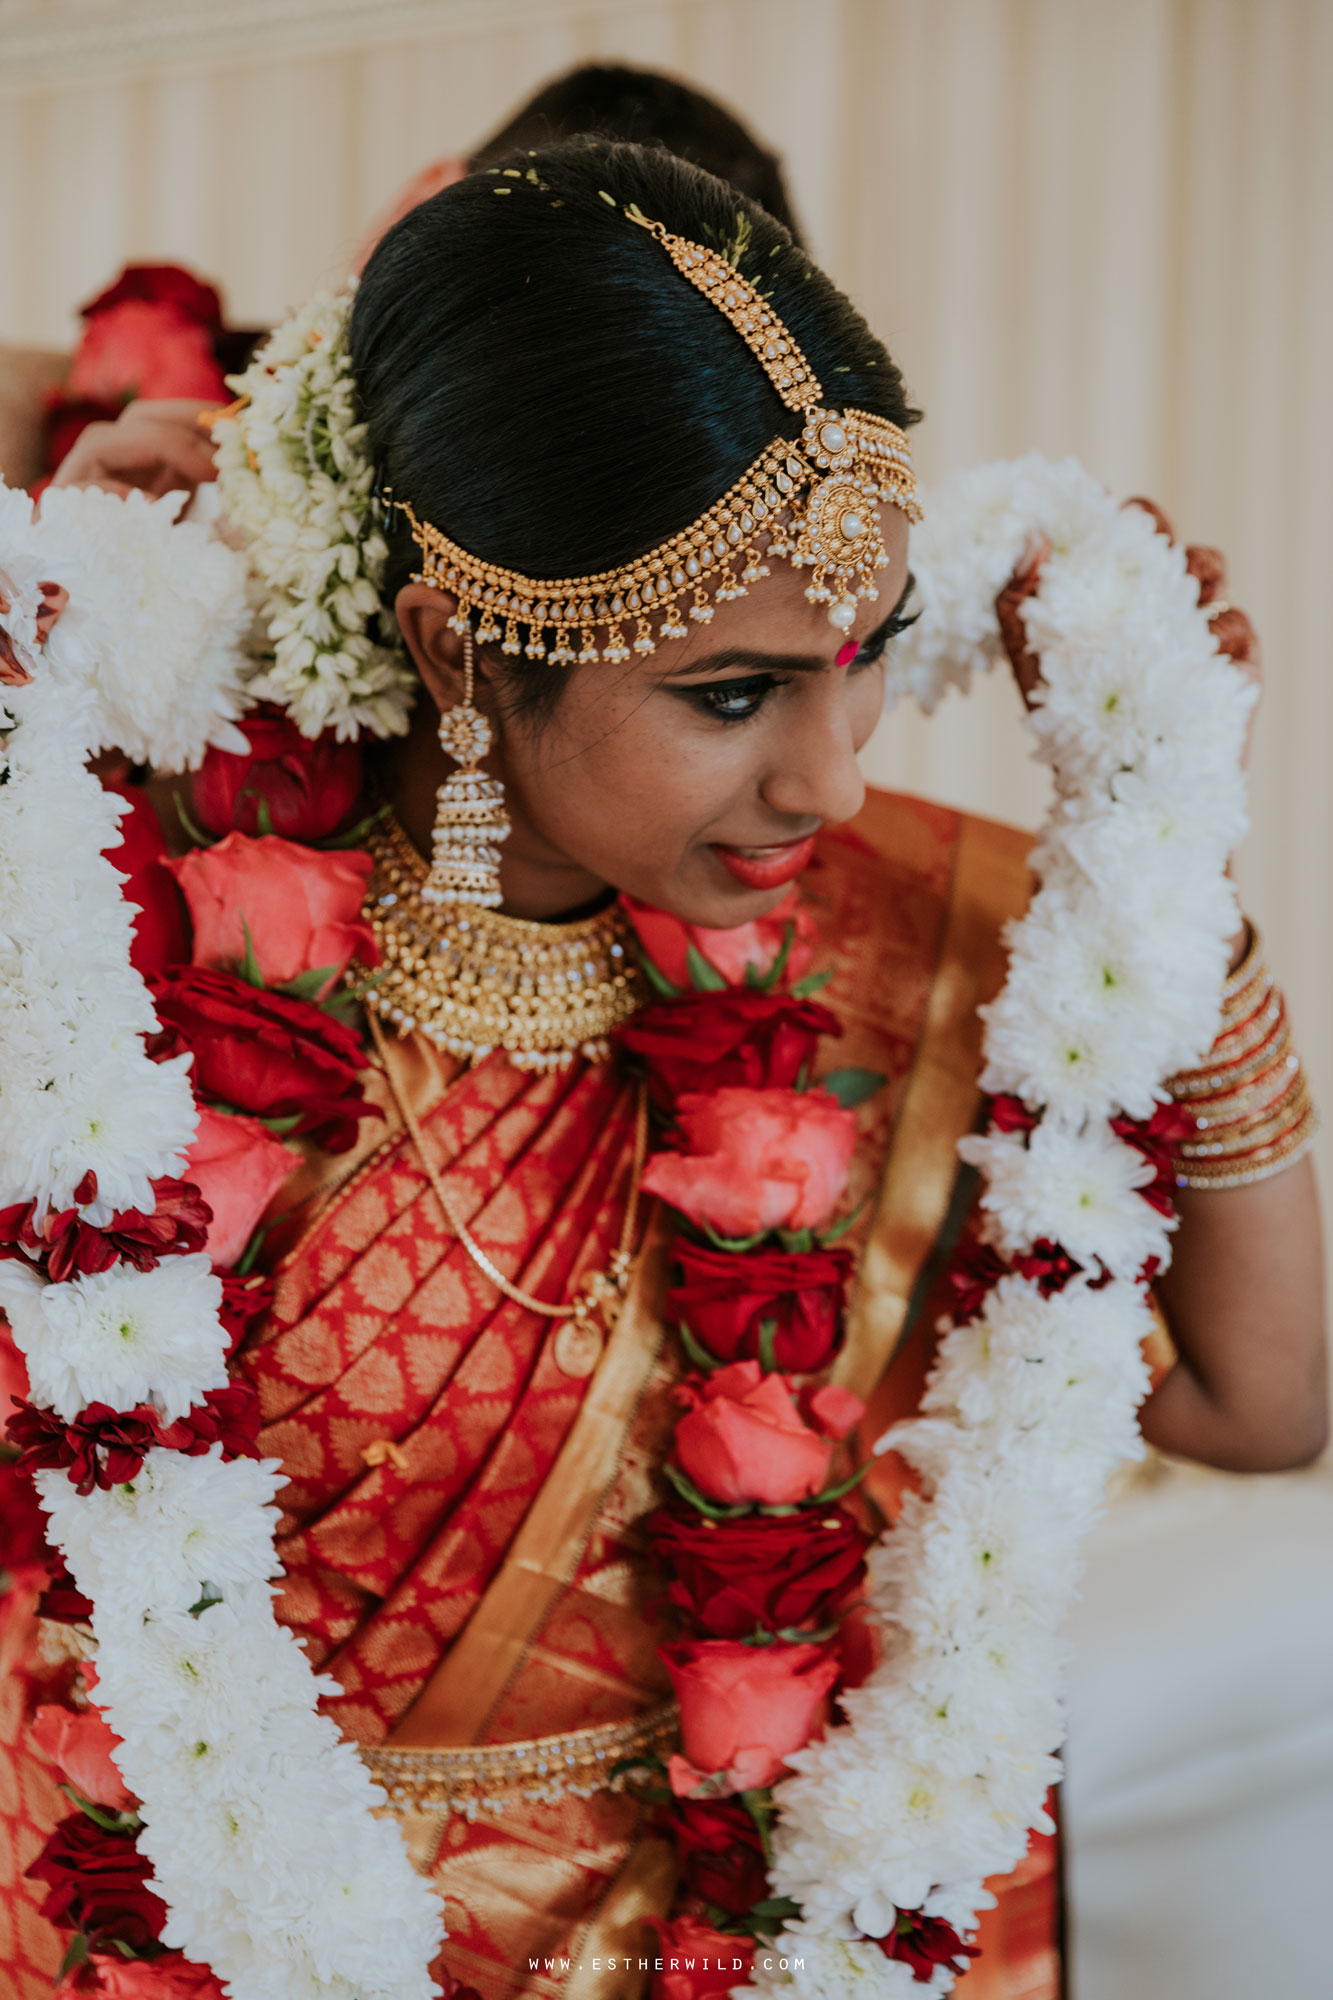 Northbrook_Park_Farnham_Surrey_London_Wedding_Hindu_Fusion_Esther_Wild_Photographer_IMG_5250.jpg